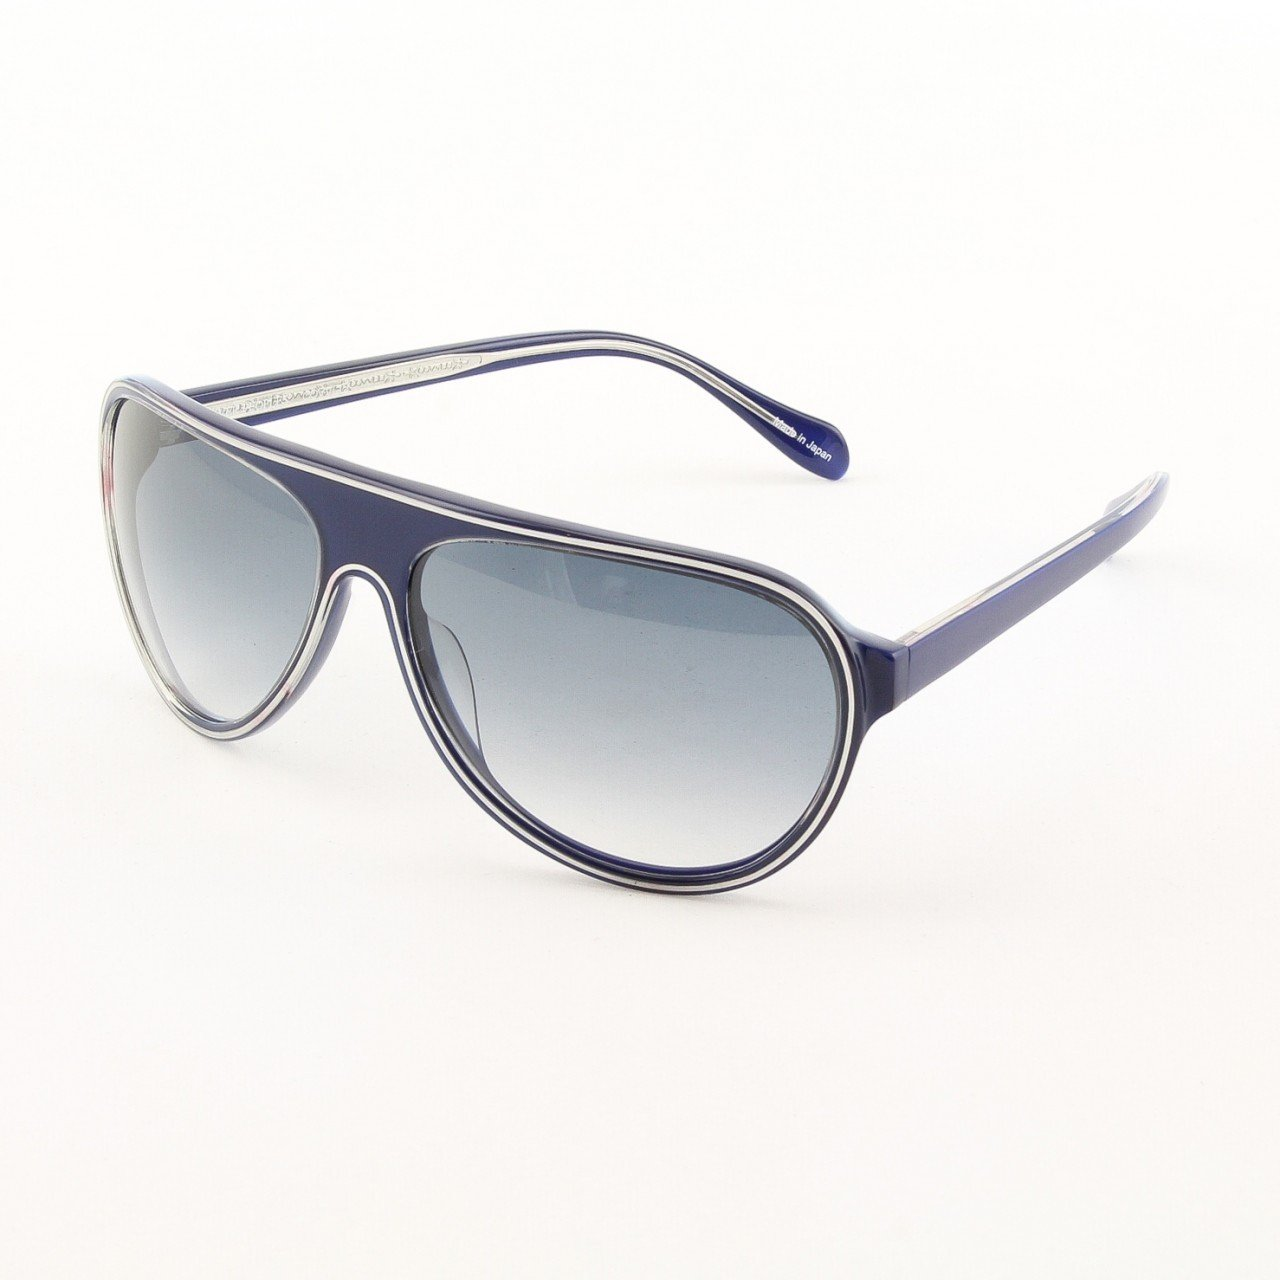 Oliver Peoples Gadson Sunglasses Col. RN 4562 Royal Navy Blue with Blue Gradient Lenses